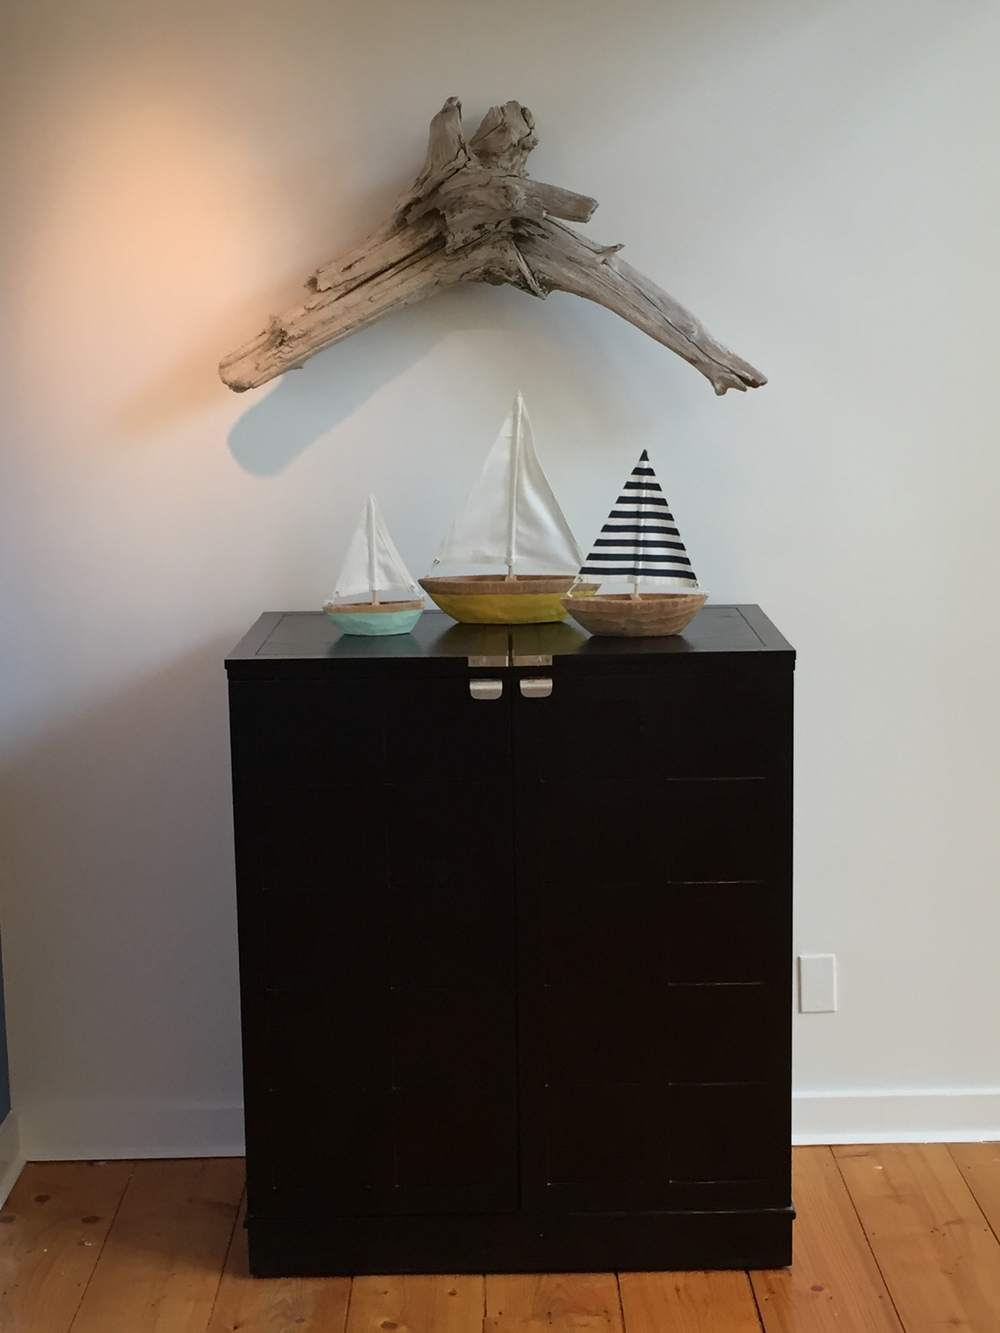 The homeowner's existing bar cabinet is softened by using a unique piece of driftwood that they found as artwork.  It is the perfect personal touch for the space.